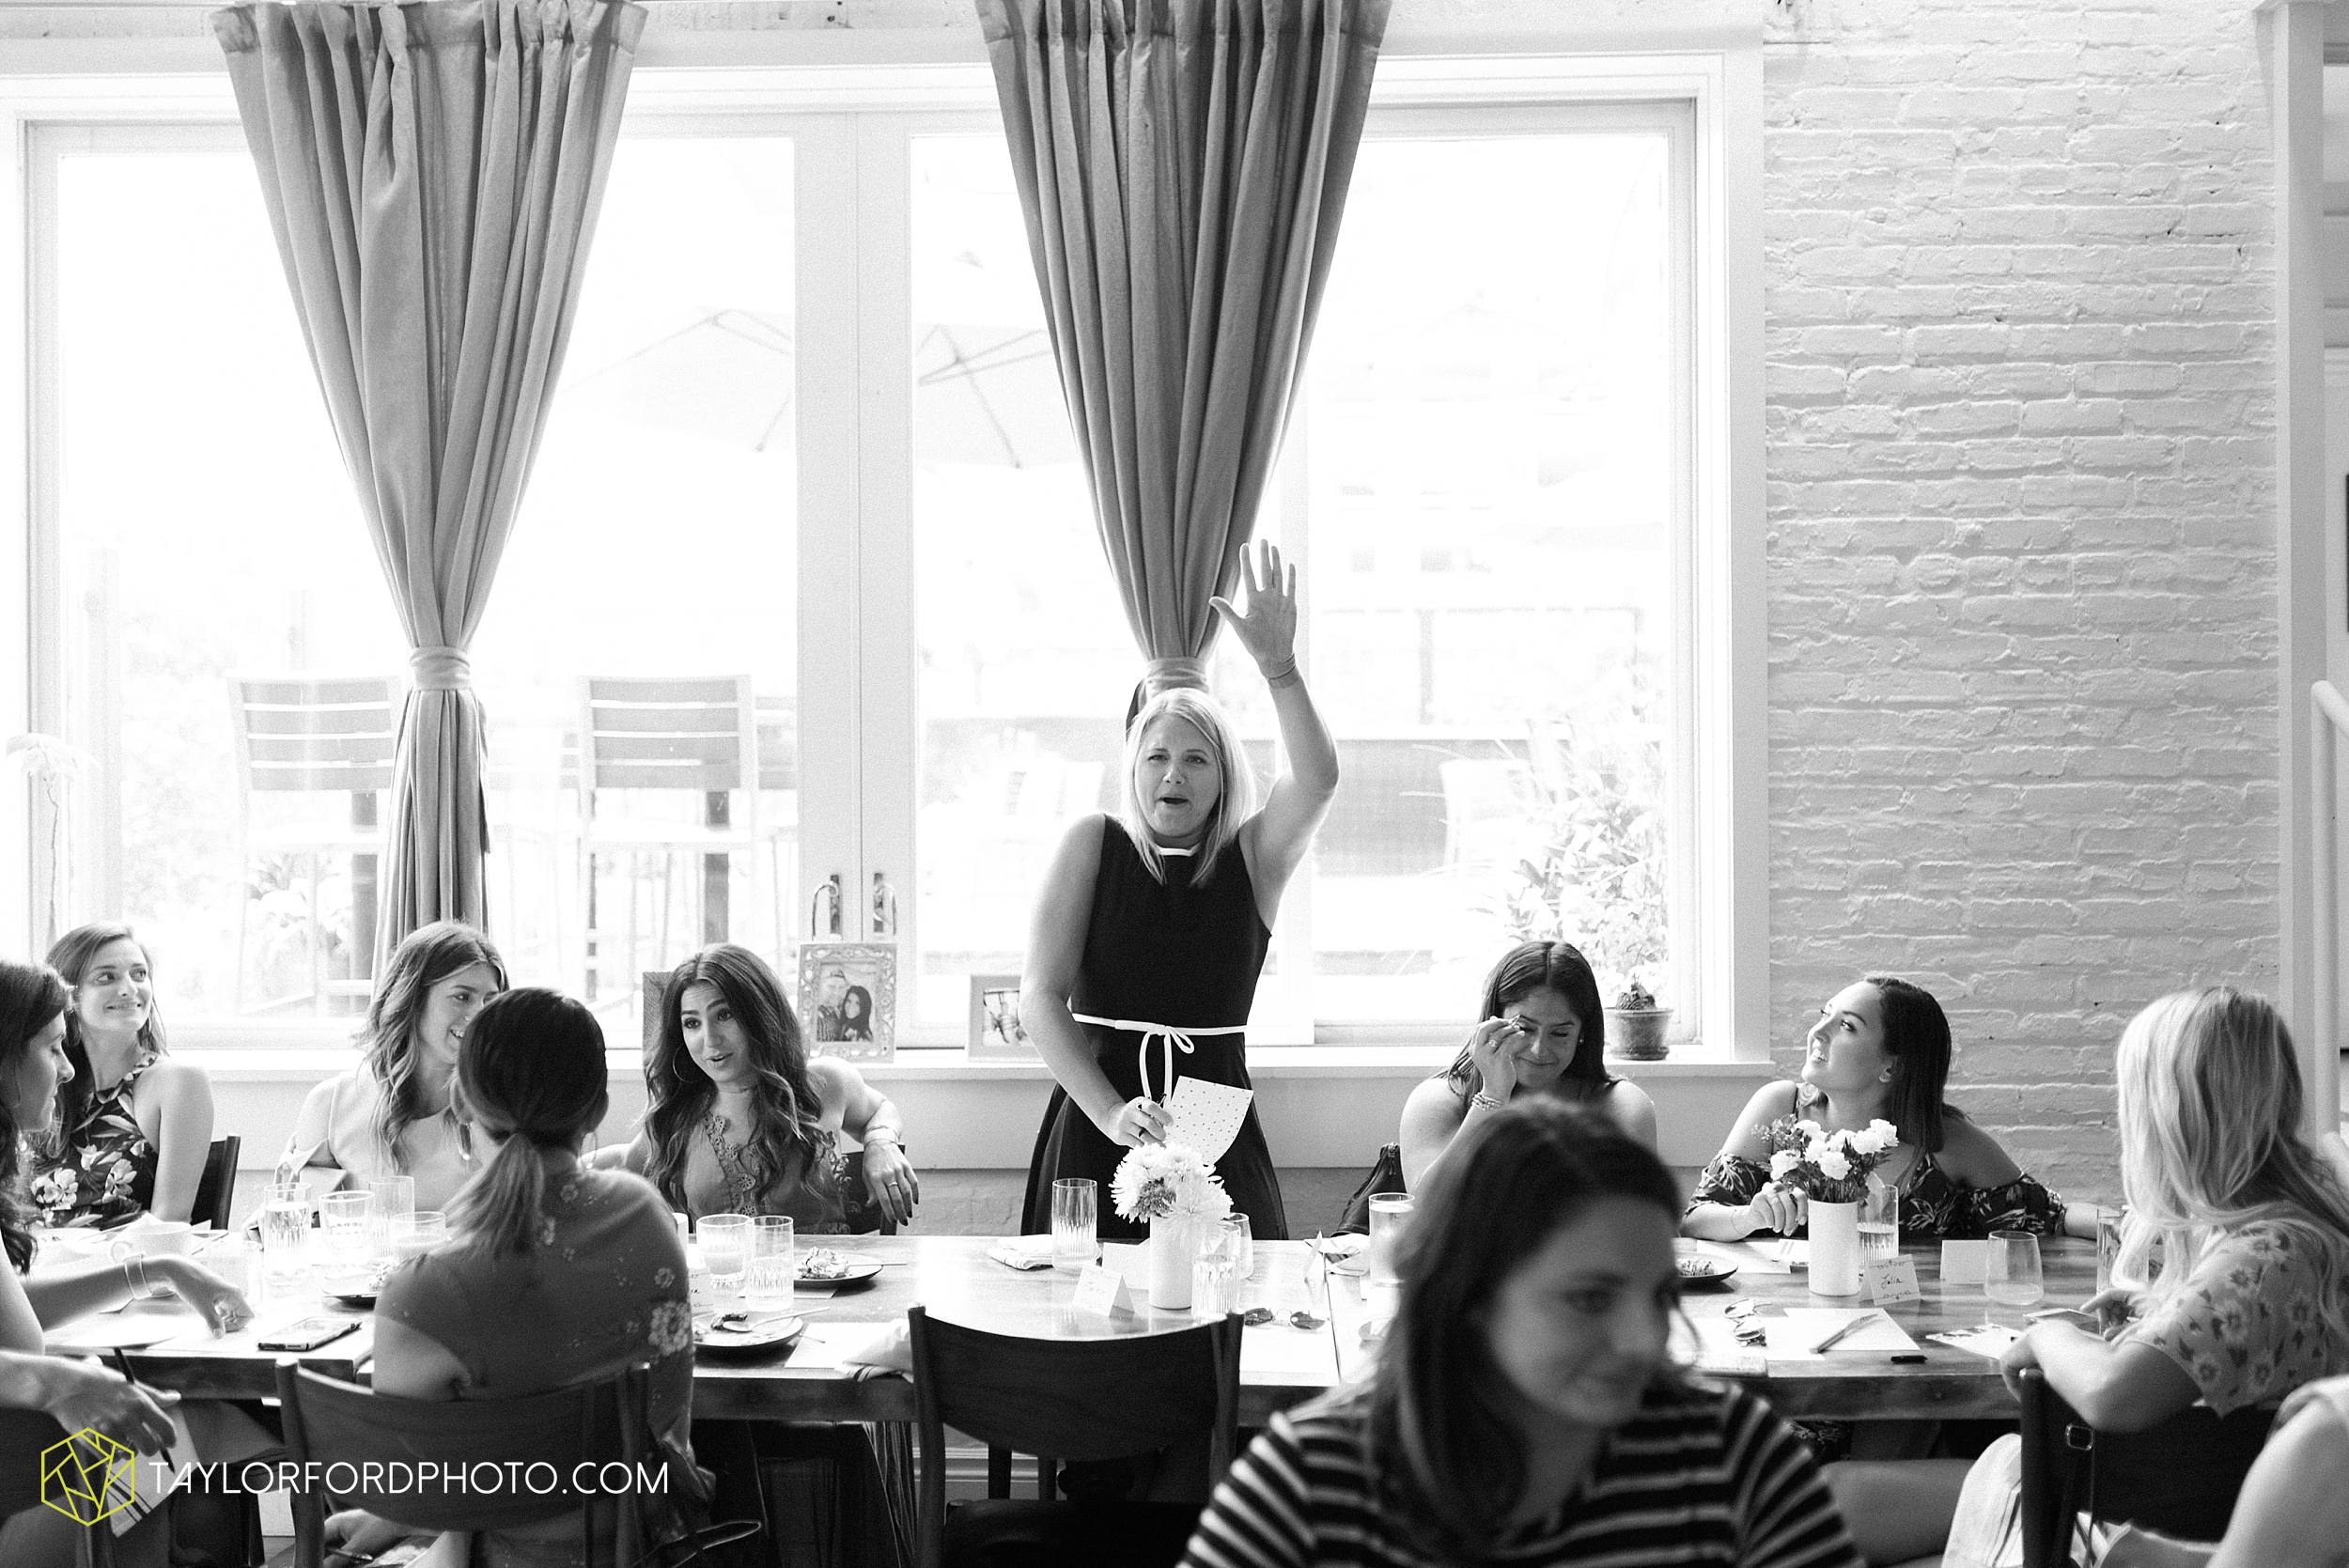 chicago-illinois-bridal-shower-little-goat-diner-west-loop-wedding-photographer-taylor-ford-photographer_8846.jpg